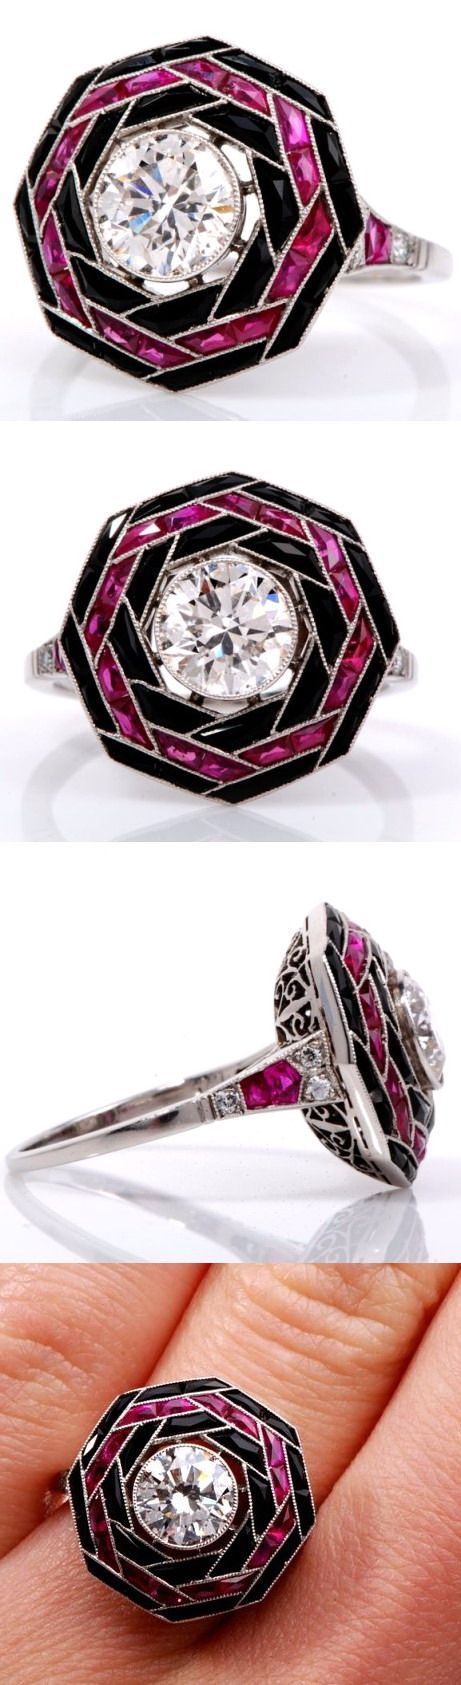 Antique Deco 1.85 ct Diamond Ruby Onyx Platinum Engagement Ring. This…